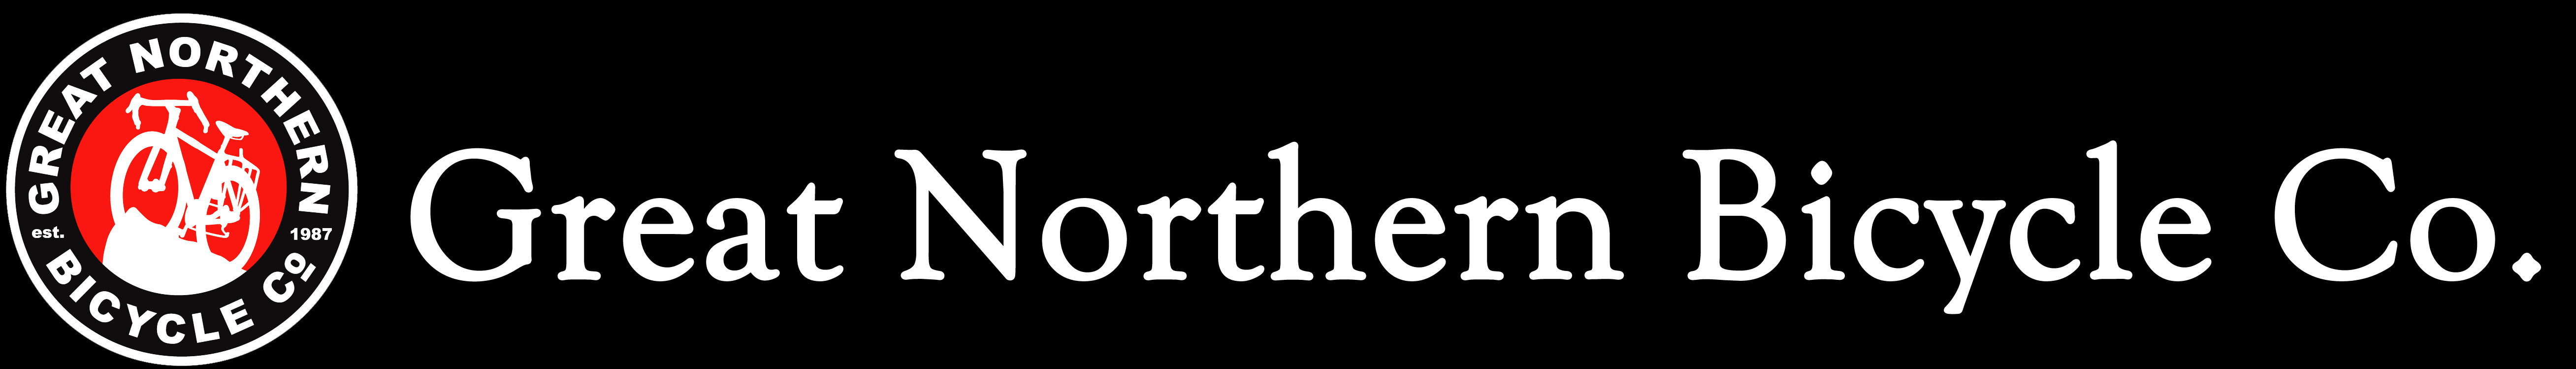 Great Northern Bicycle Co Home Page